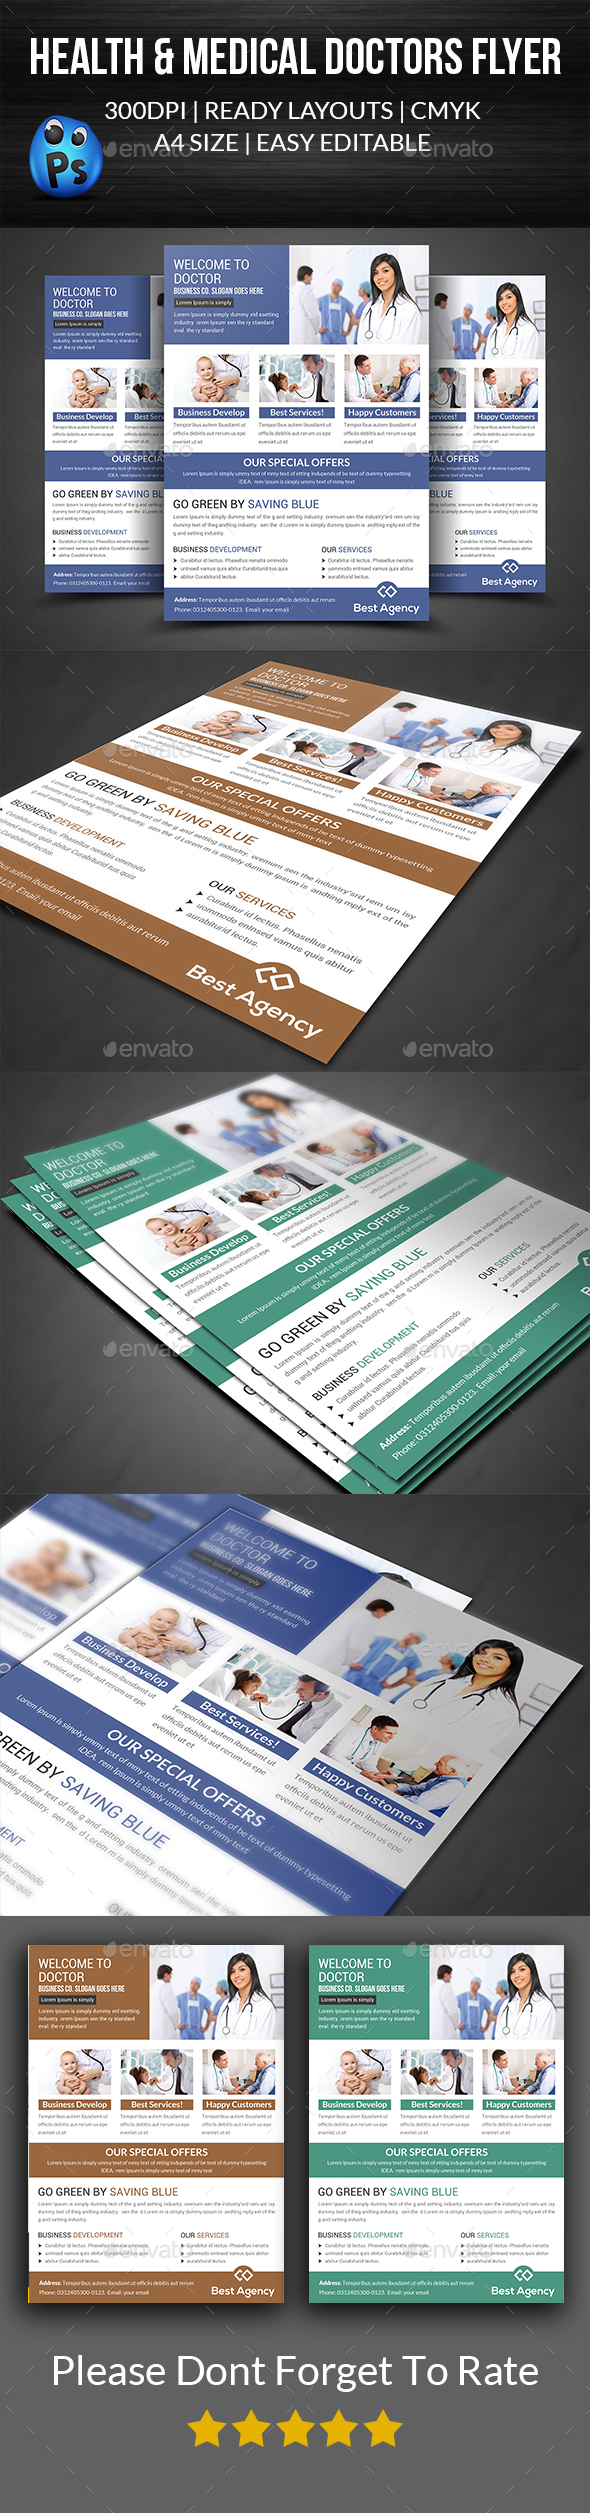 Doctor Flyer Template - Corporate Flyers